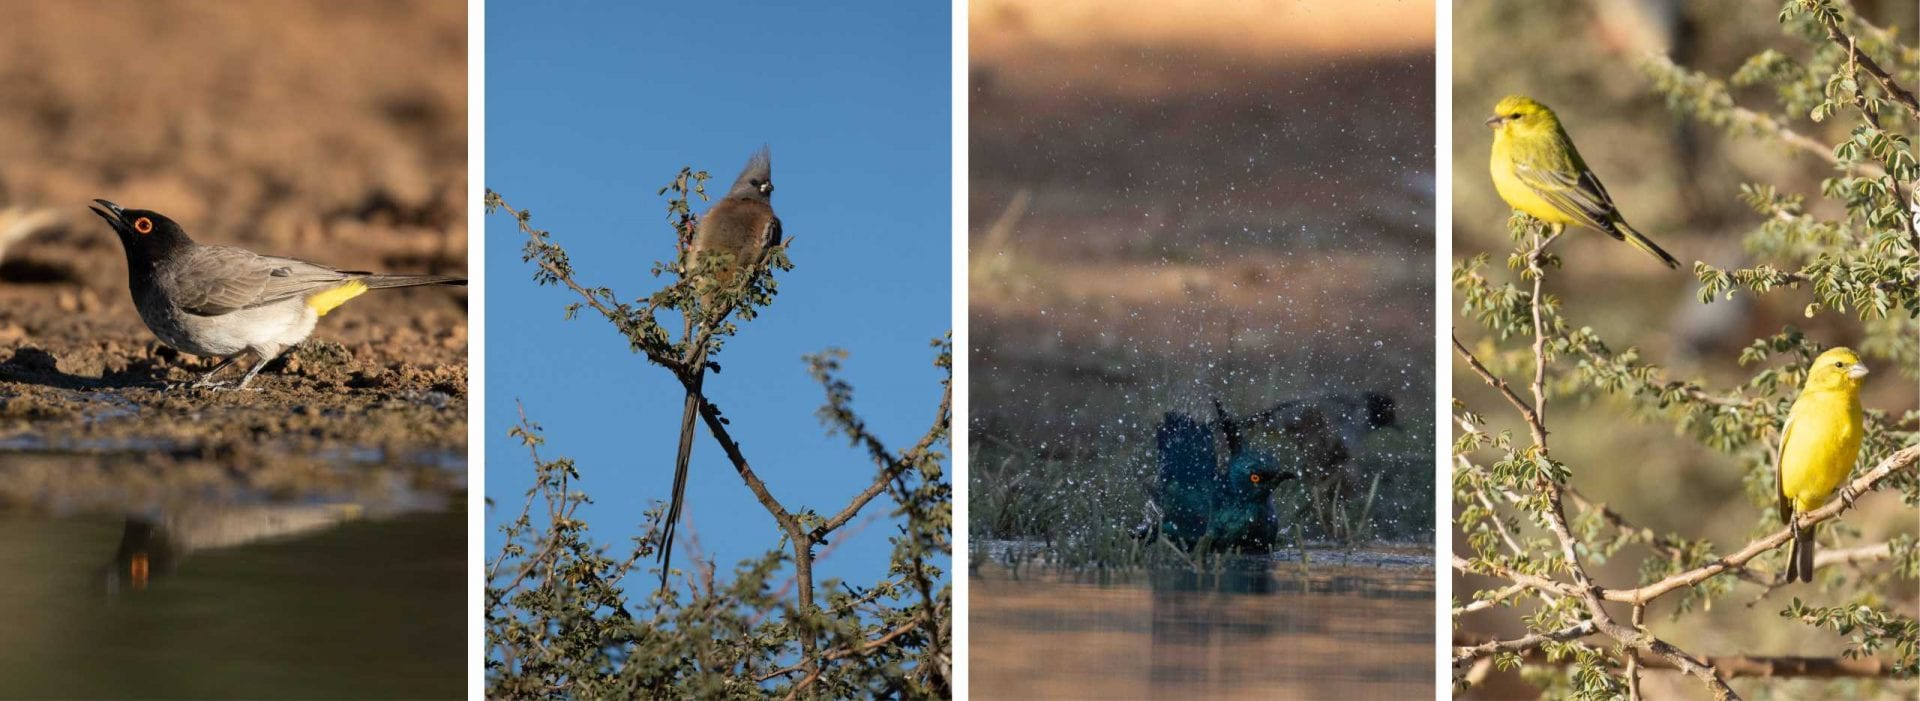 African red-eyed bulbul, White-backed mouse bird, Cape glossy starling, Yellow canary, birds, birder, bird watching